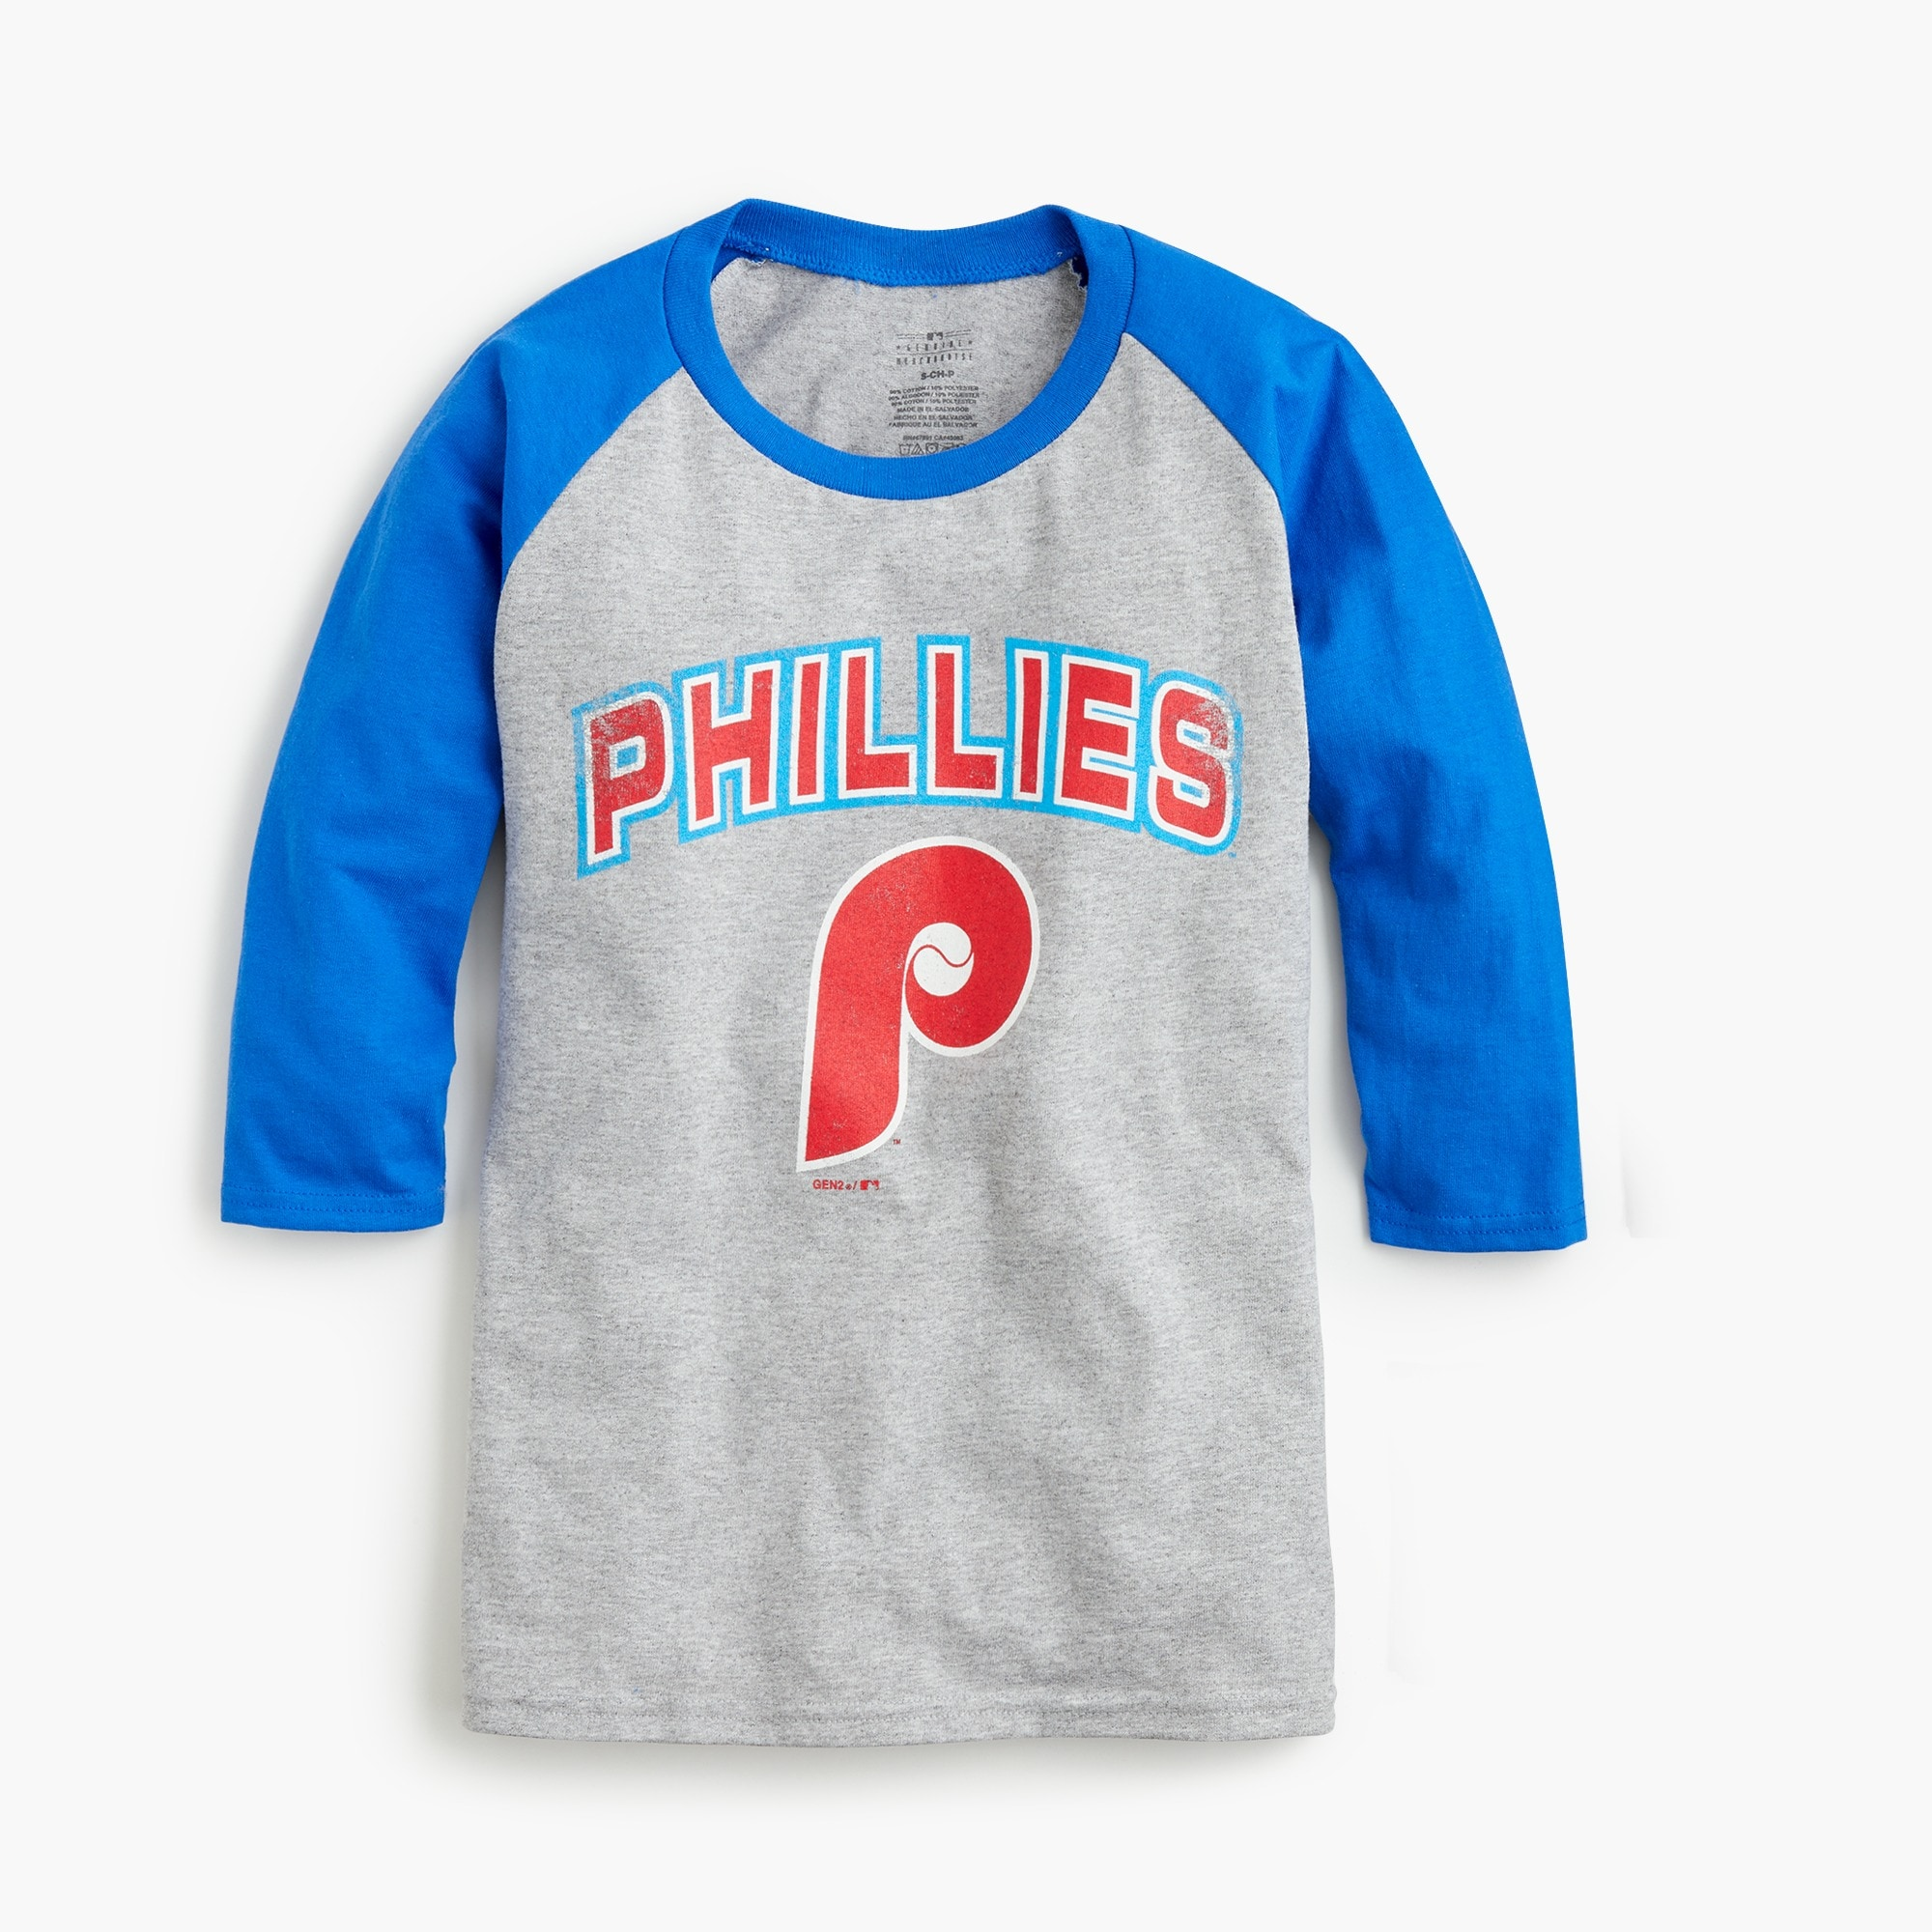 Image 1 for Kids' Philadelphia Phillies baseball T-shirt